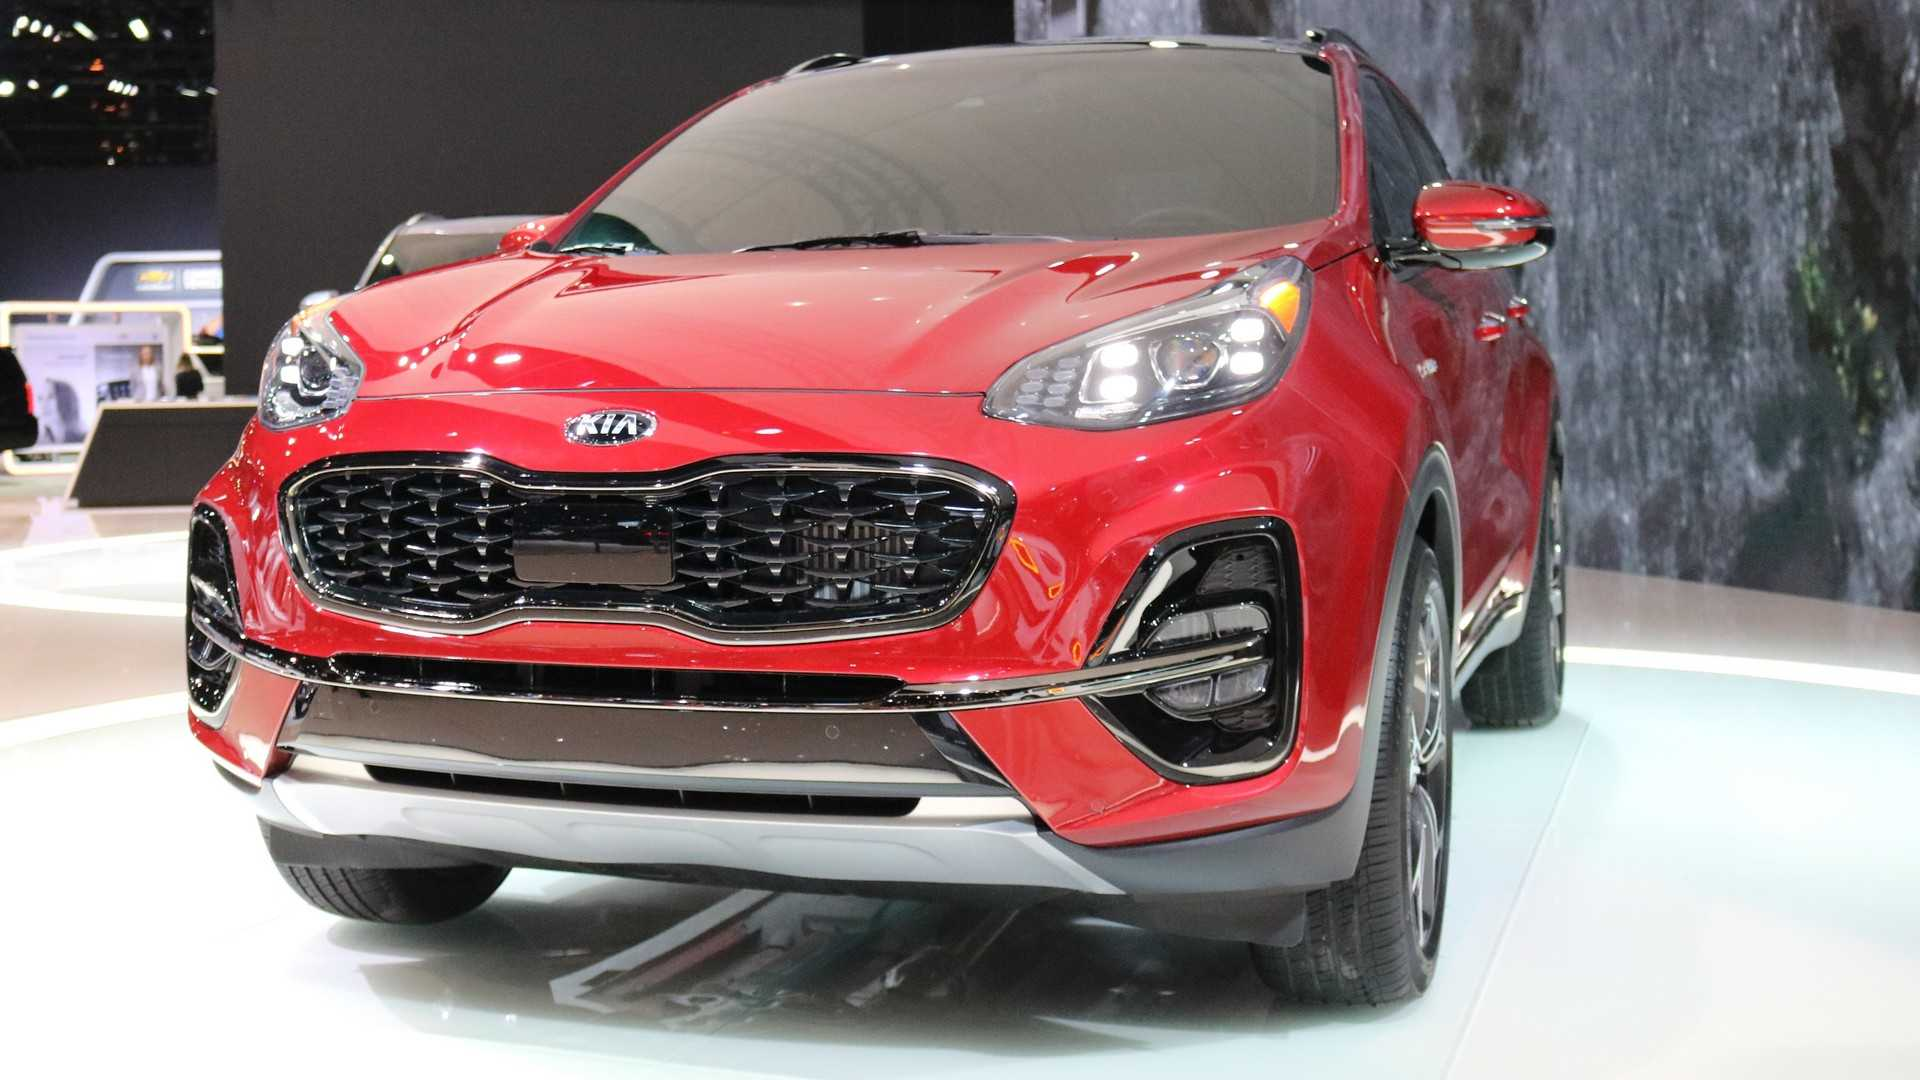 Formacar Kia Sportage Facelift Brings Additional Safety